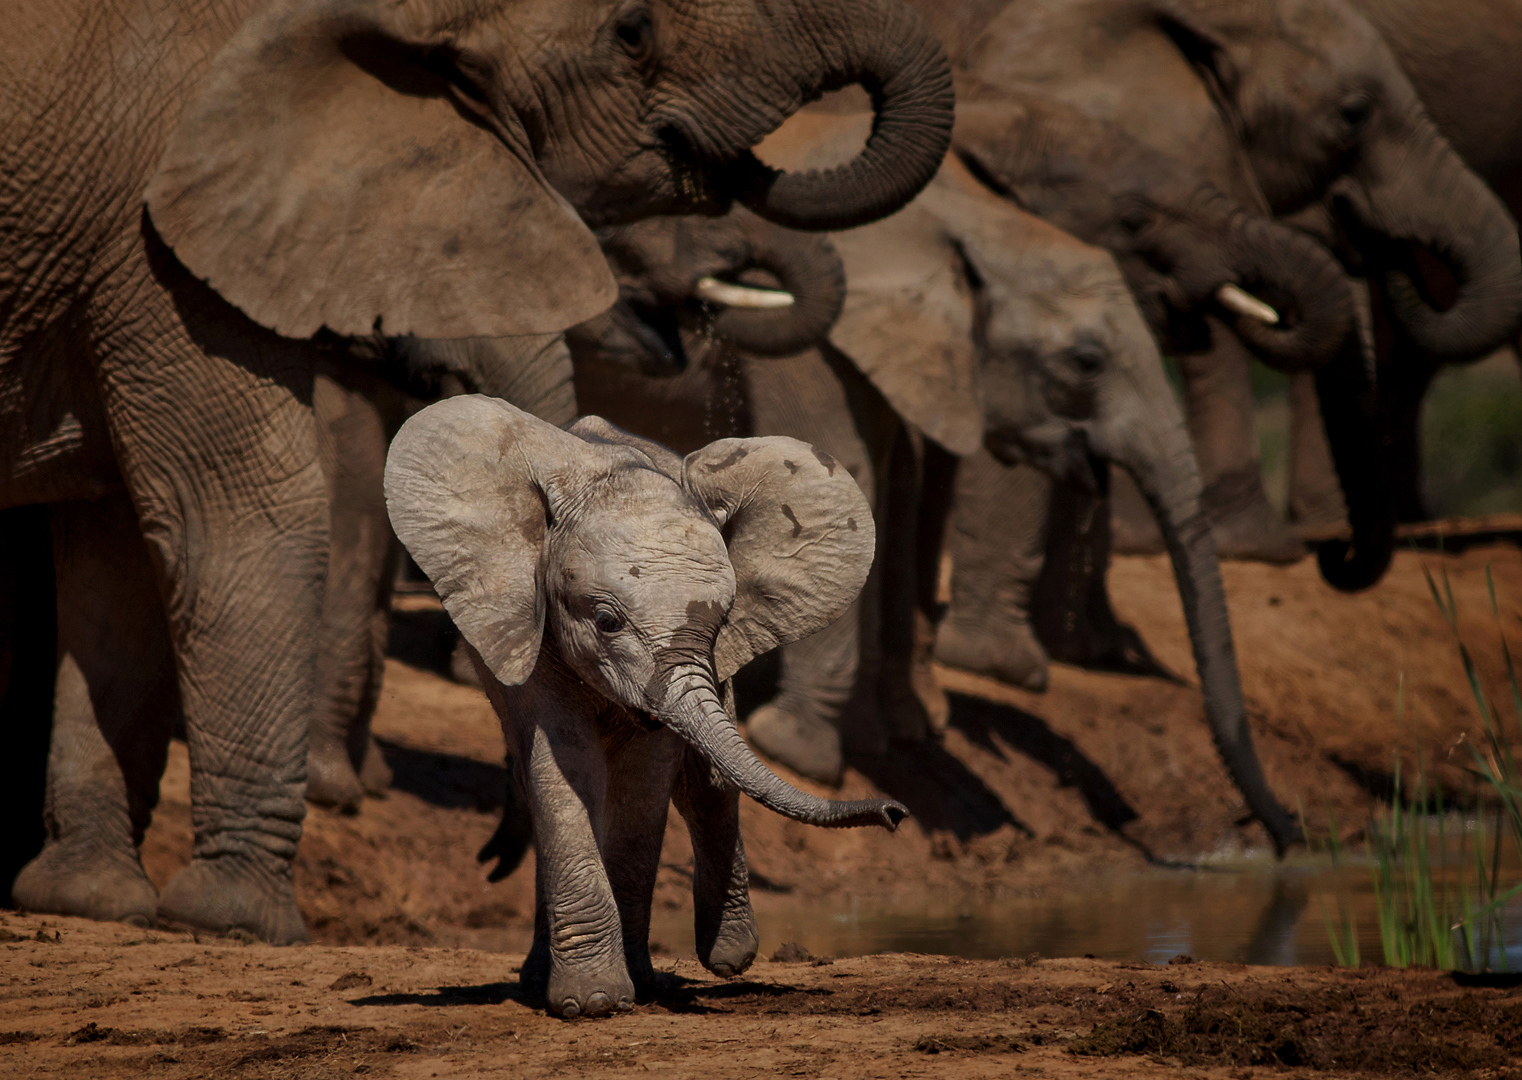 Trunks, I have one too. Baby elephant running with his ears and trunk flying about and the rest of the herd behind drinking at the waterhole. Taken in Addo Elephant National Park, South Africa